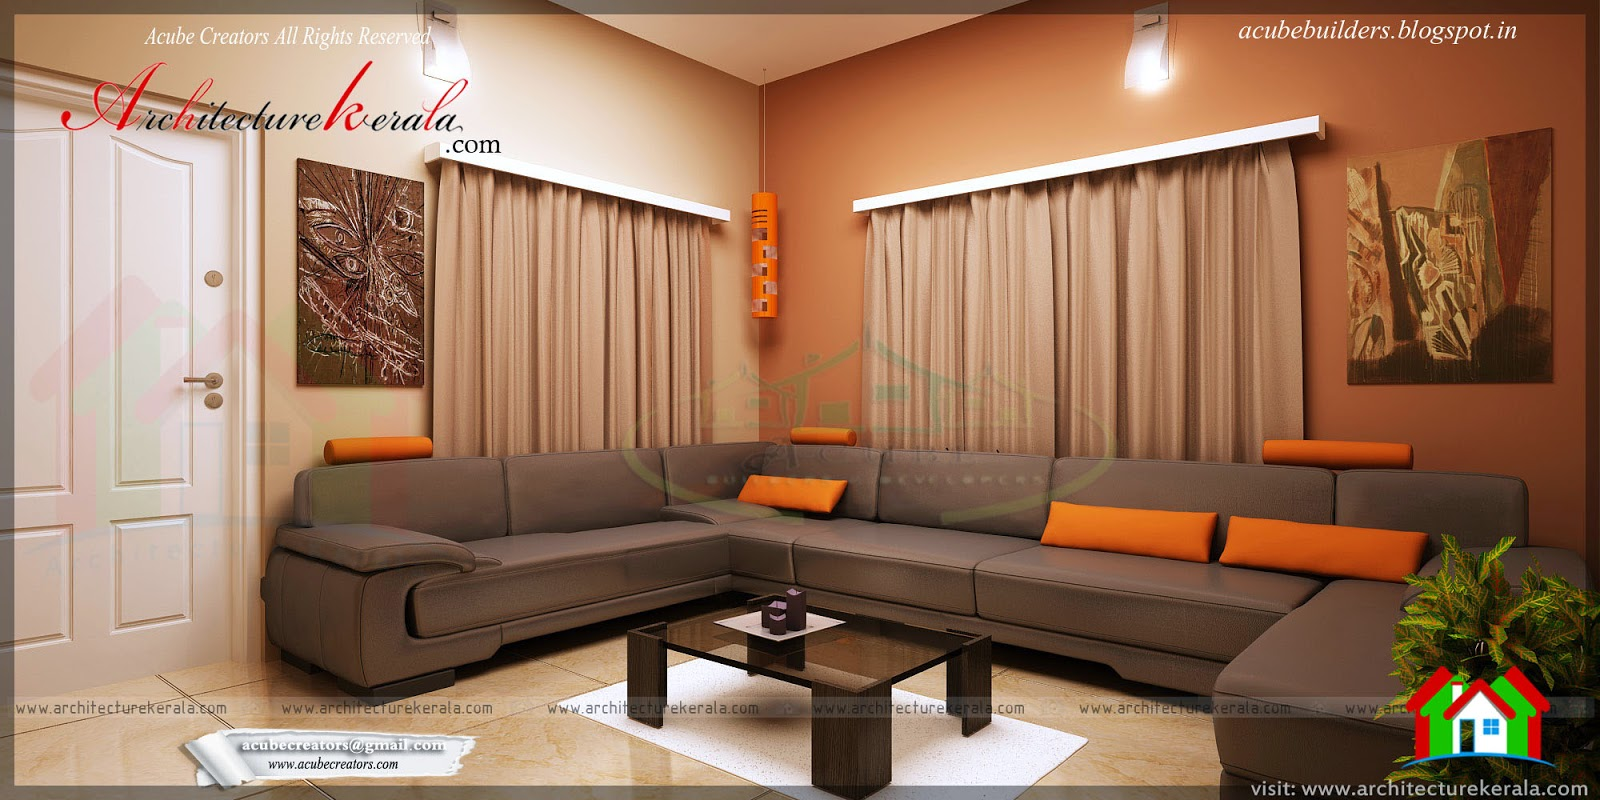 Drawing room interior design architecture kerala for Interior designs drawings